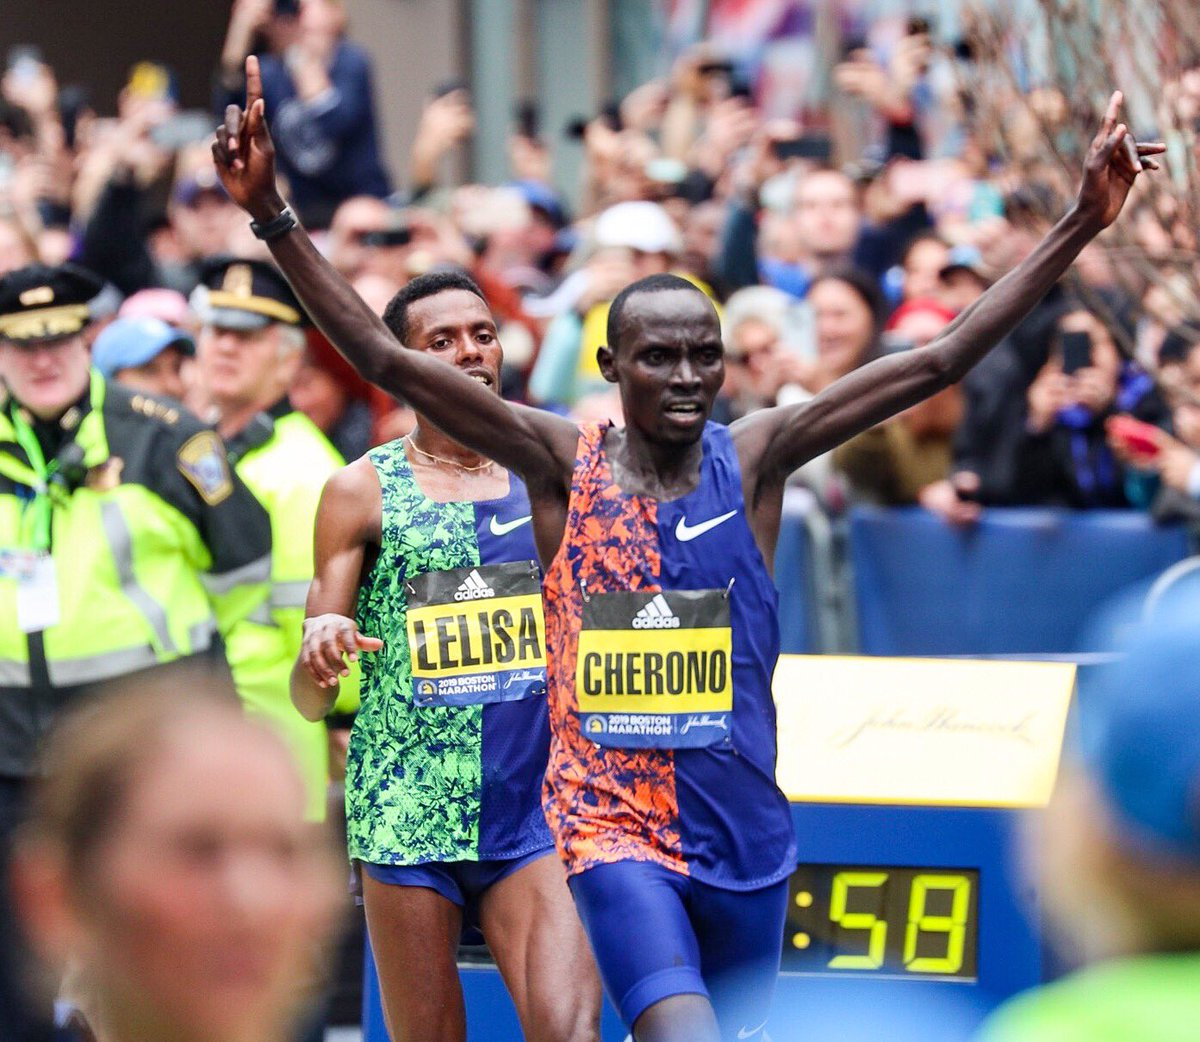 Congratulations to the @BostonMarathon winners in every category. Your victory inspires us all.